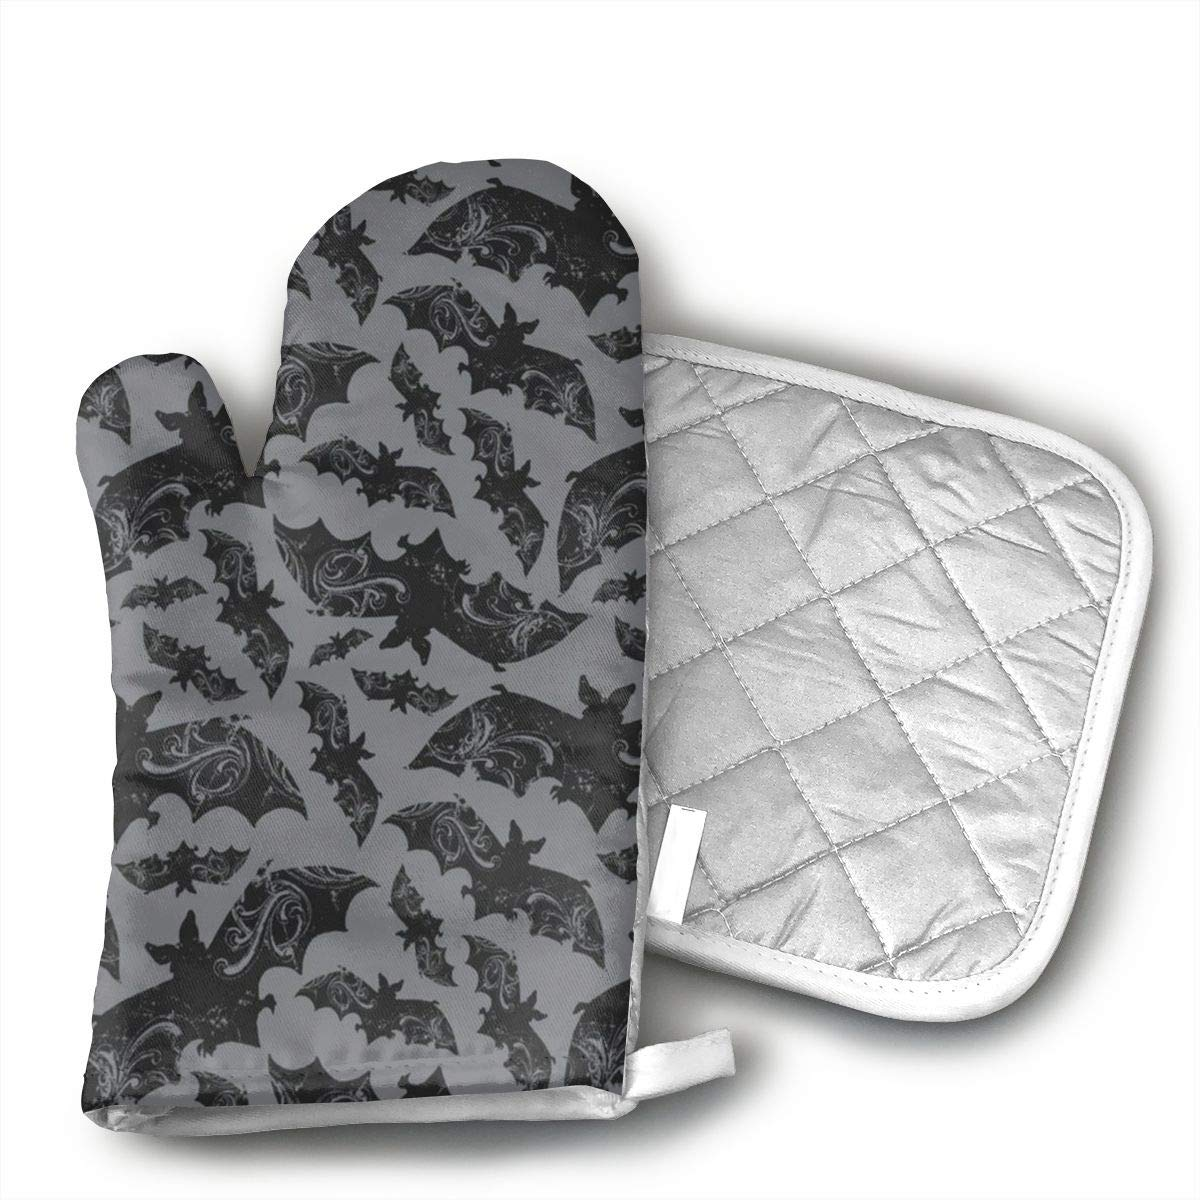 TUJABZA71 Halloween Bats Oven Mitts,Professional Heat Resistant Microwave Oven Insulation Thickening Gloves Soft Inner Lining Kitchen Cooking Mittens